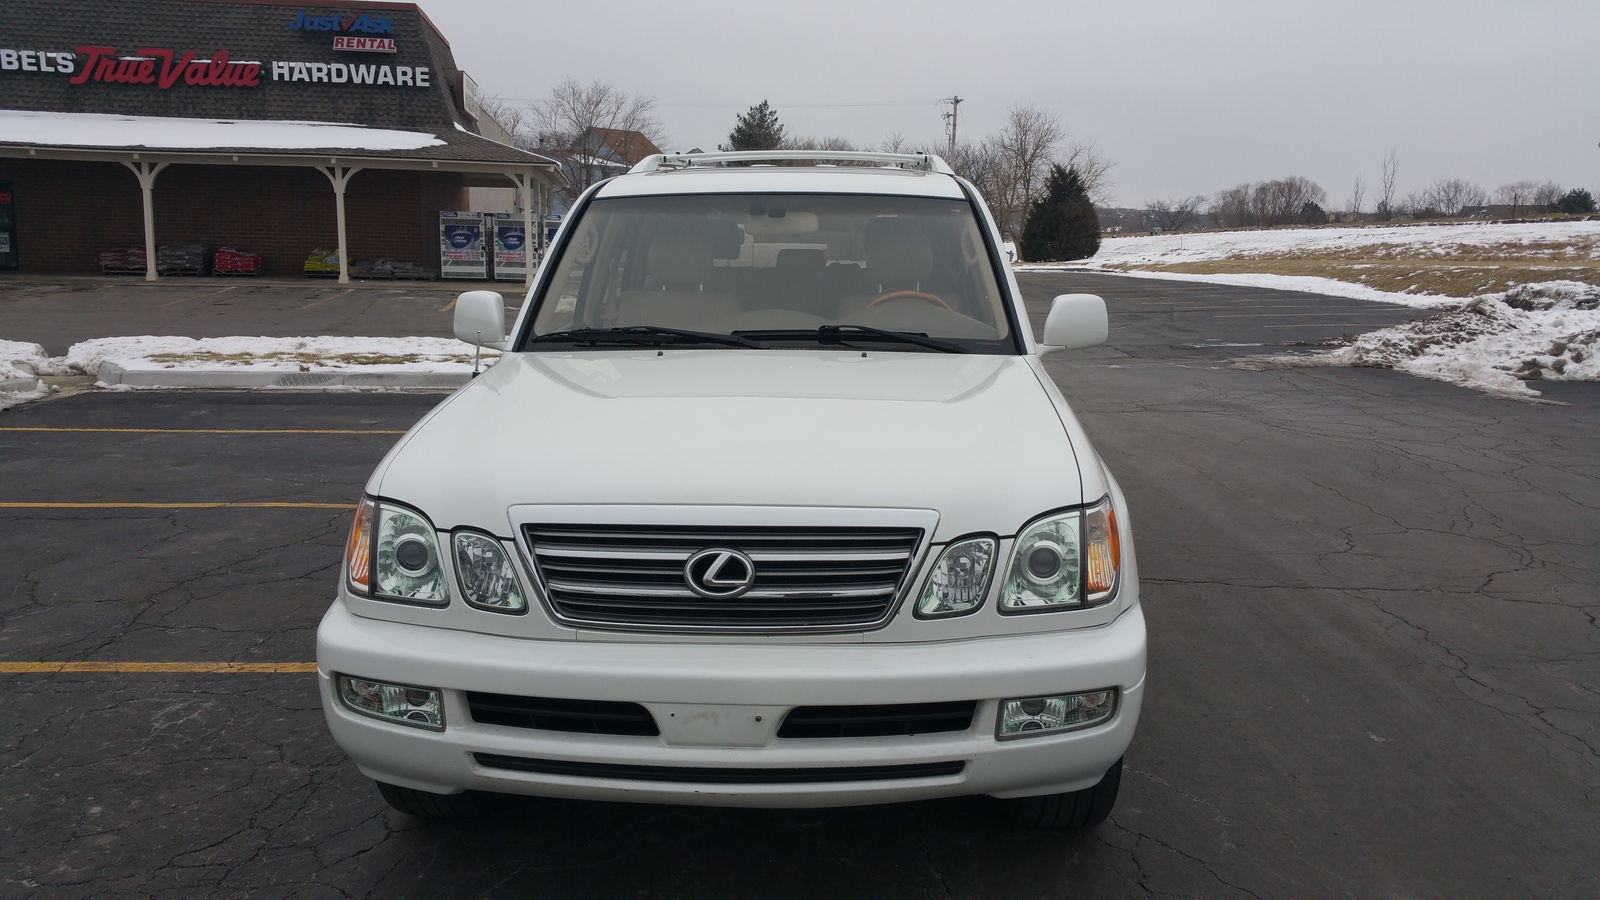 Picture of 2003 Lexus LX 470 Base